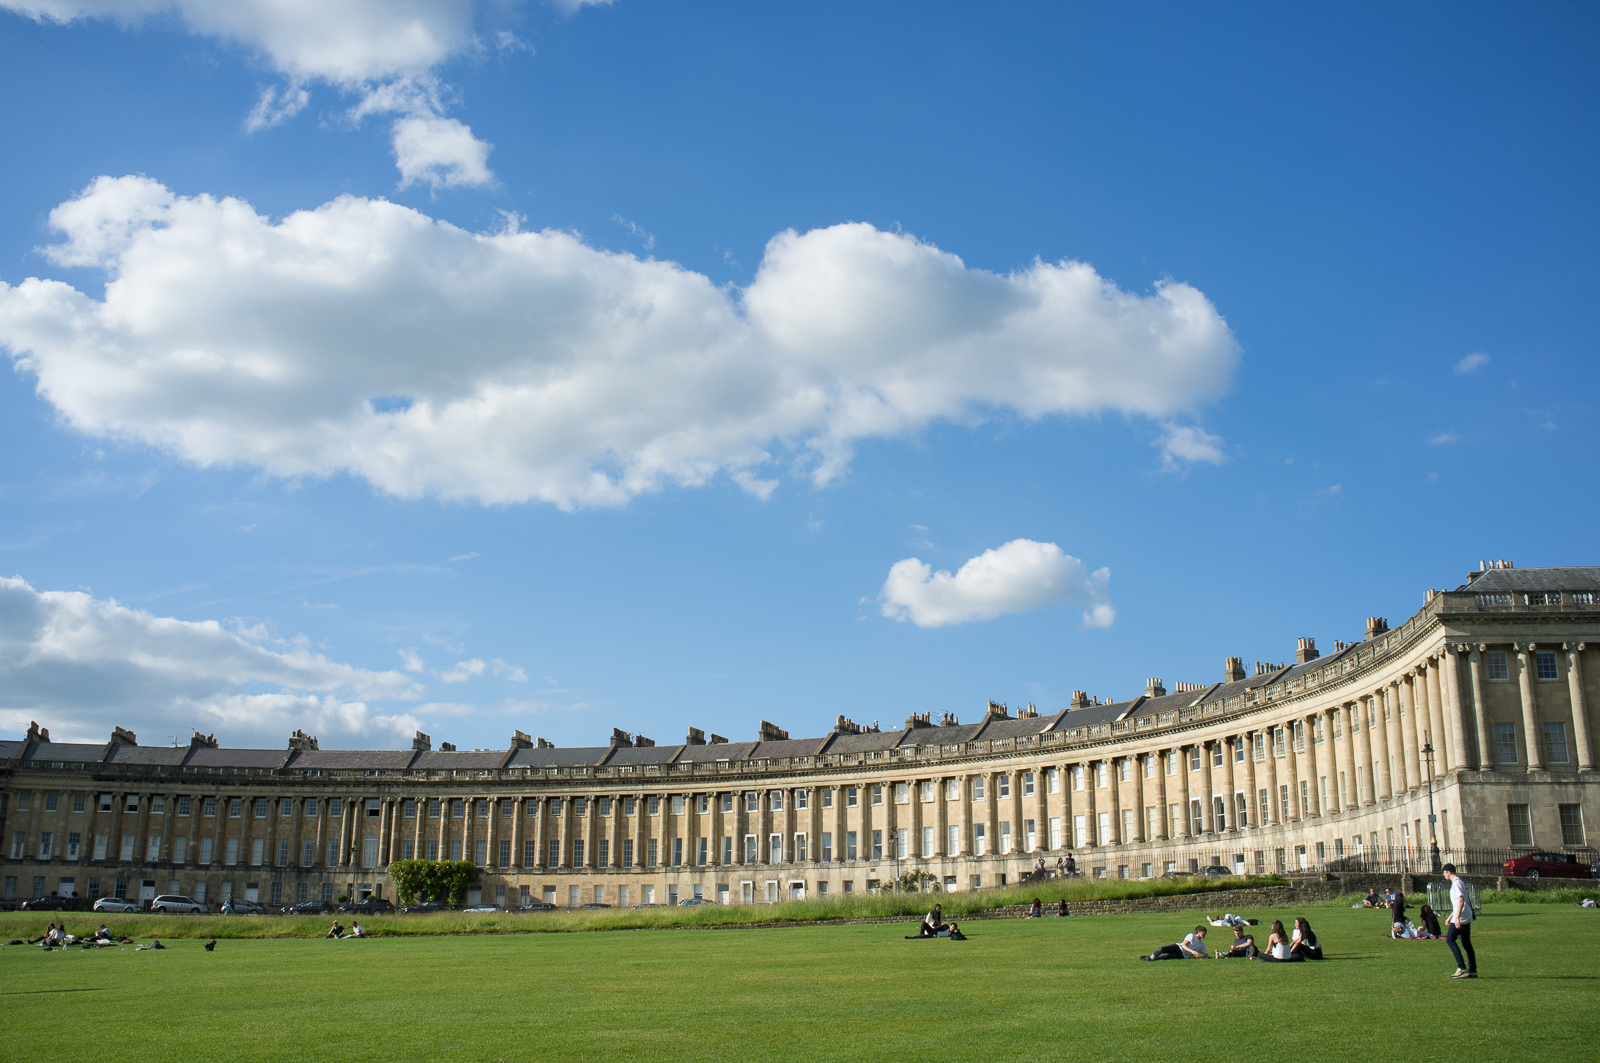 The Royal Crescent, Bath - England